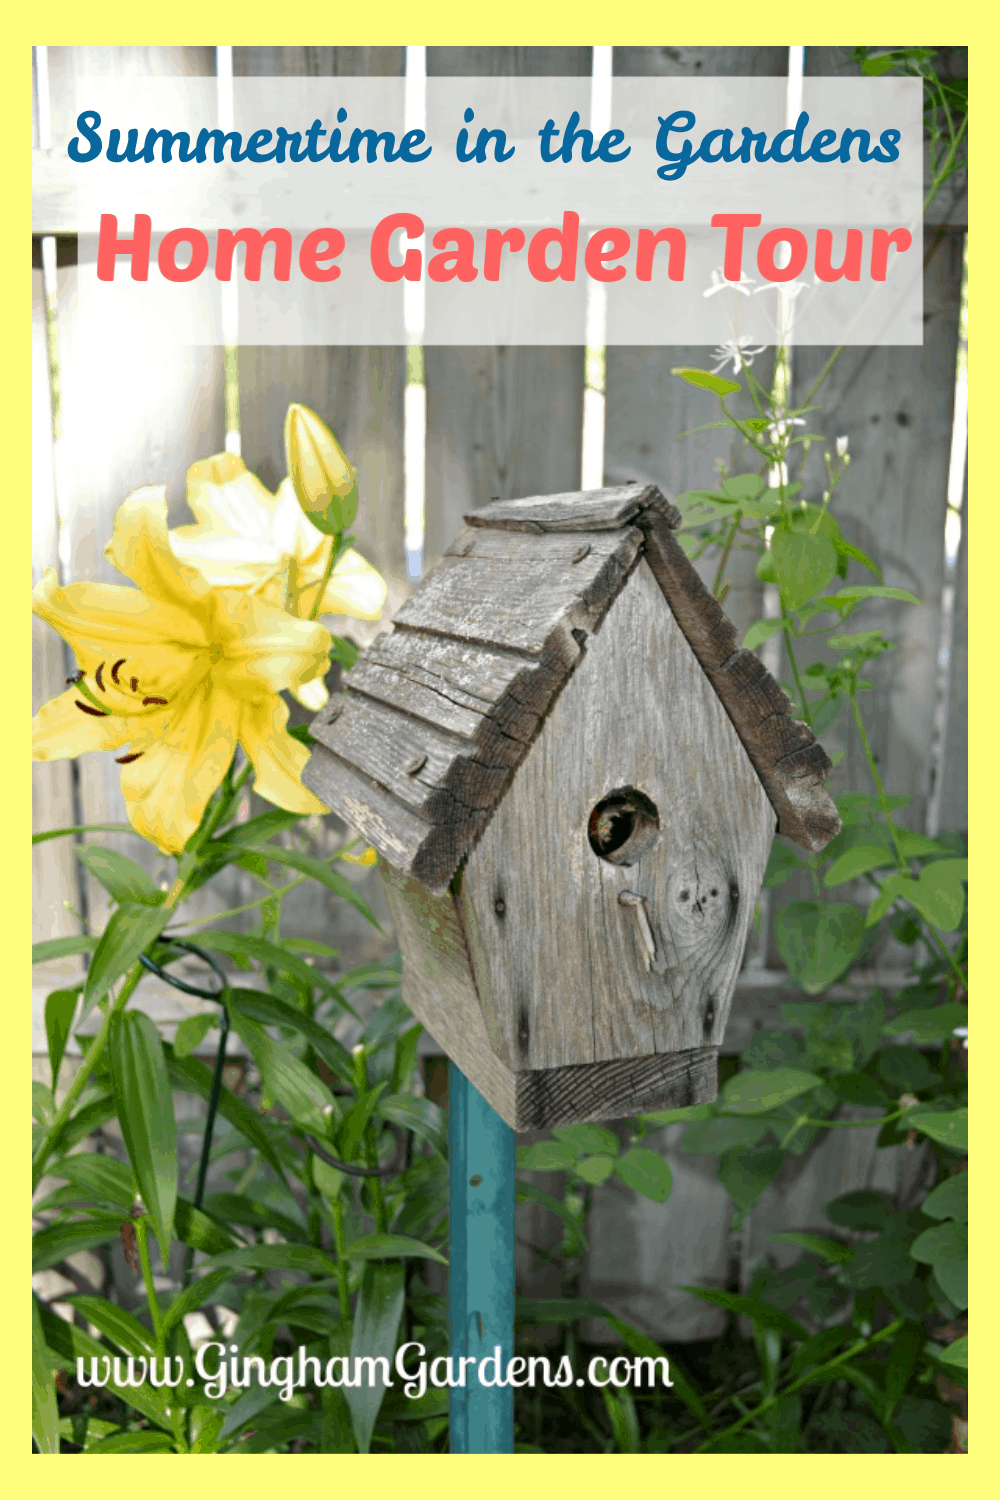 Image of a birdhouse in a flower garden with text overlay - Summertime in the Gardens - Home Garden Tour